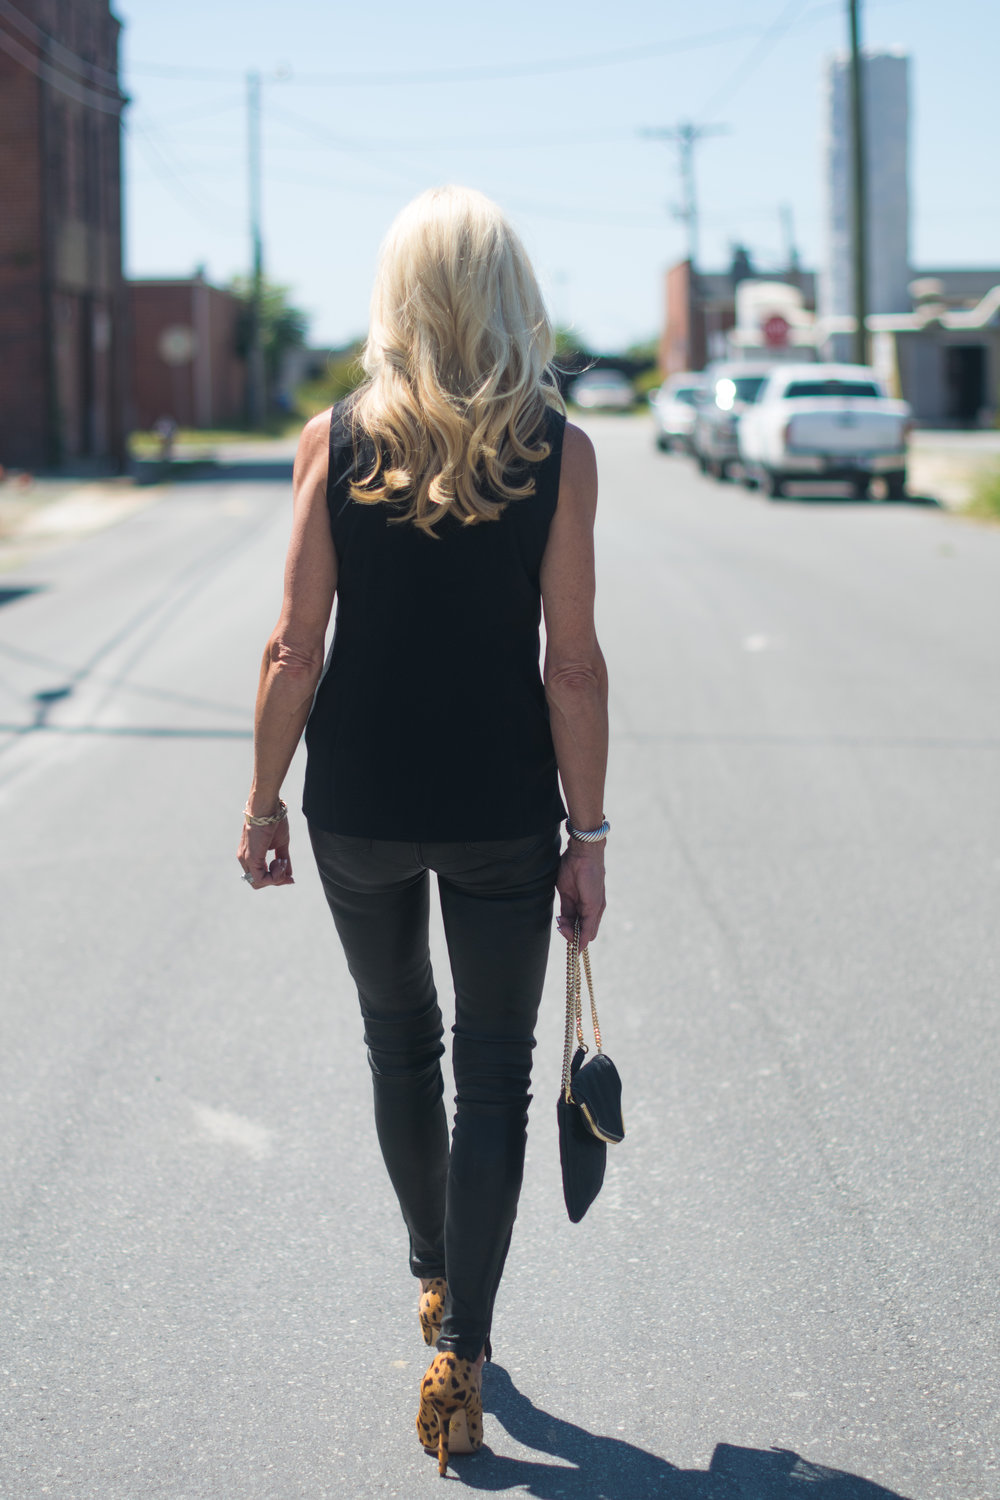 Early Fall Outfit - Leather pants and Cabi top